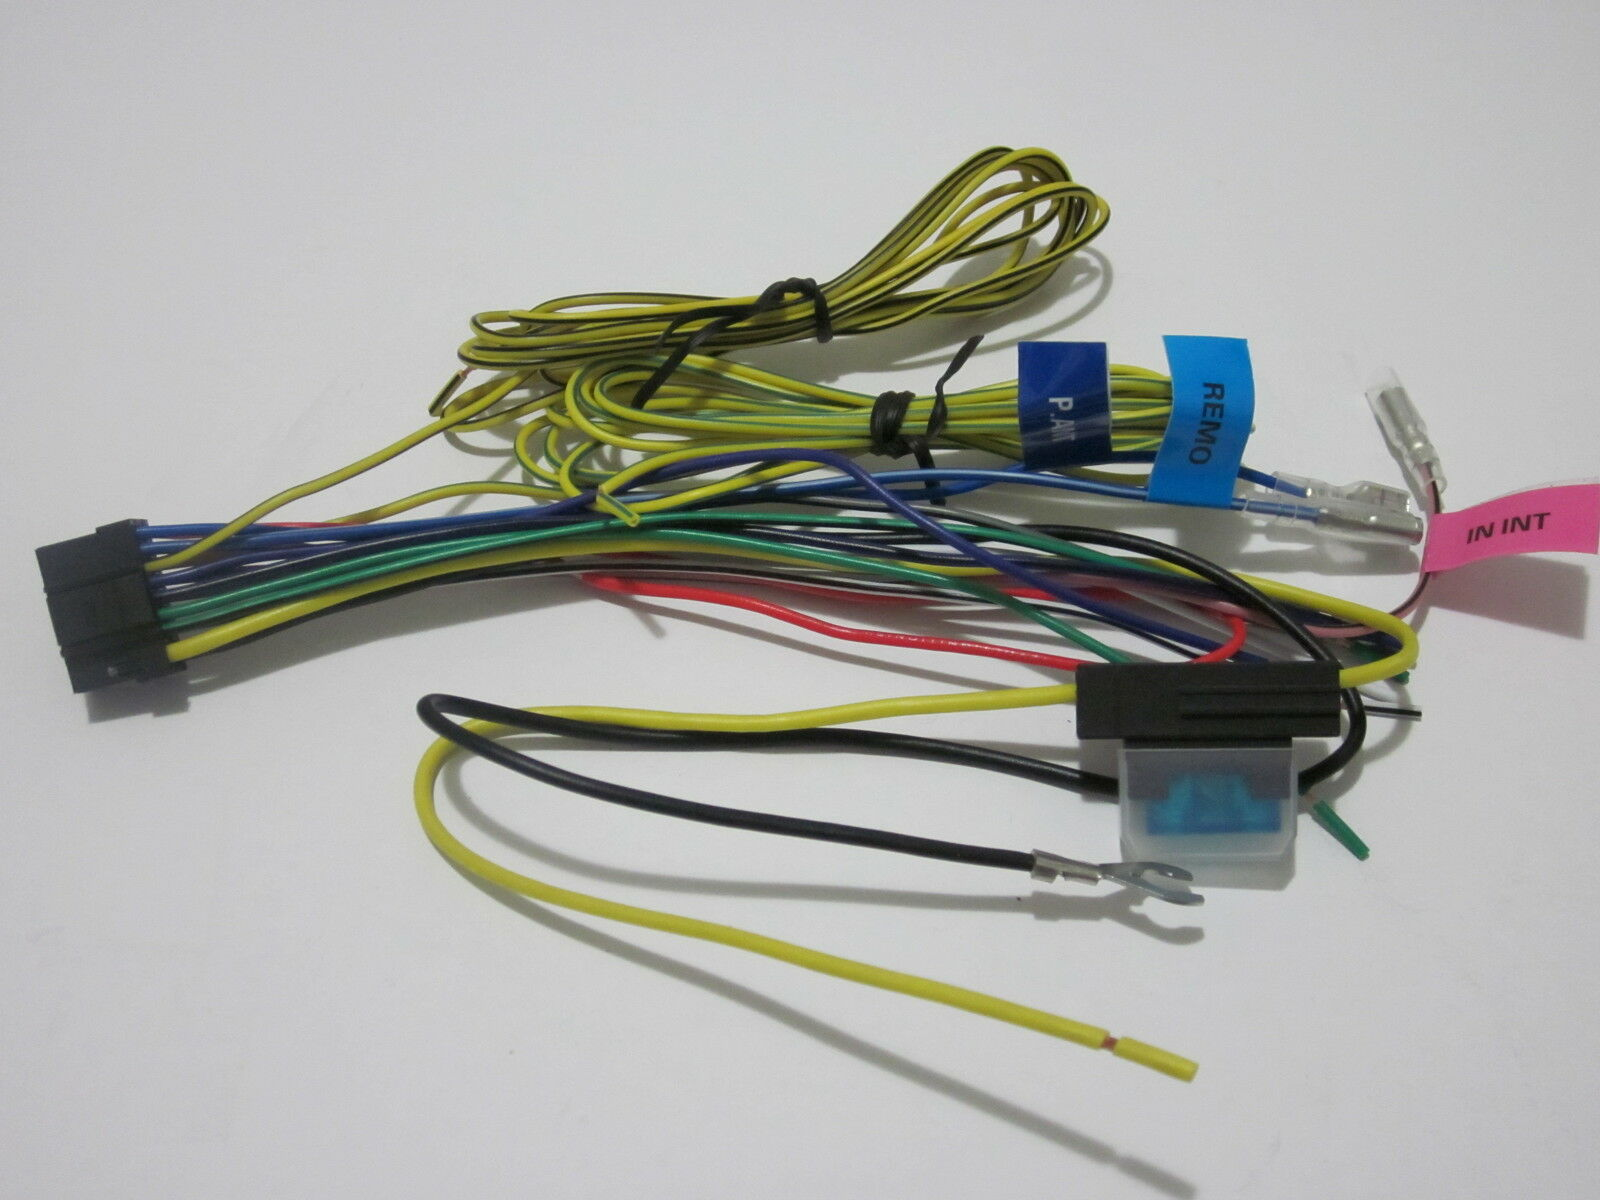 Alpine IVA-D900 Wire Harness new B 1 of 3FREE Shipping ...